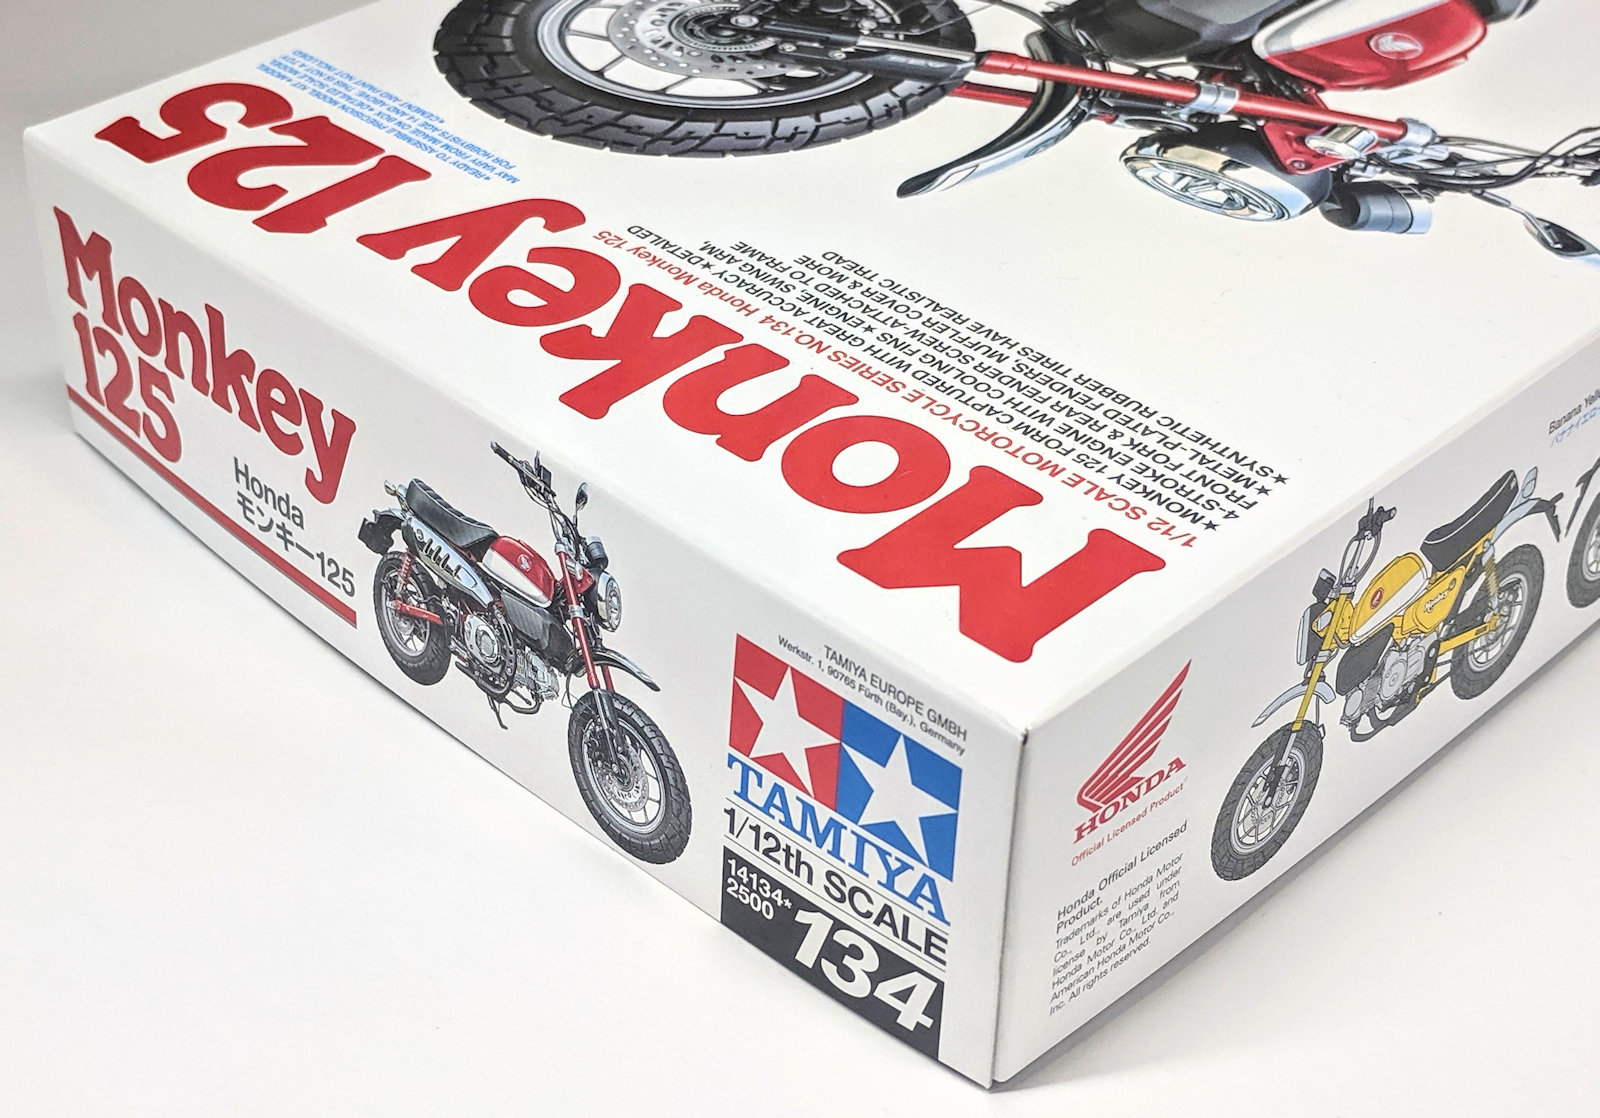 Build Review Pt I: Tamiya's 1/12th scale Honda Monkey 125